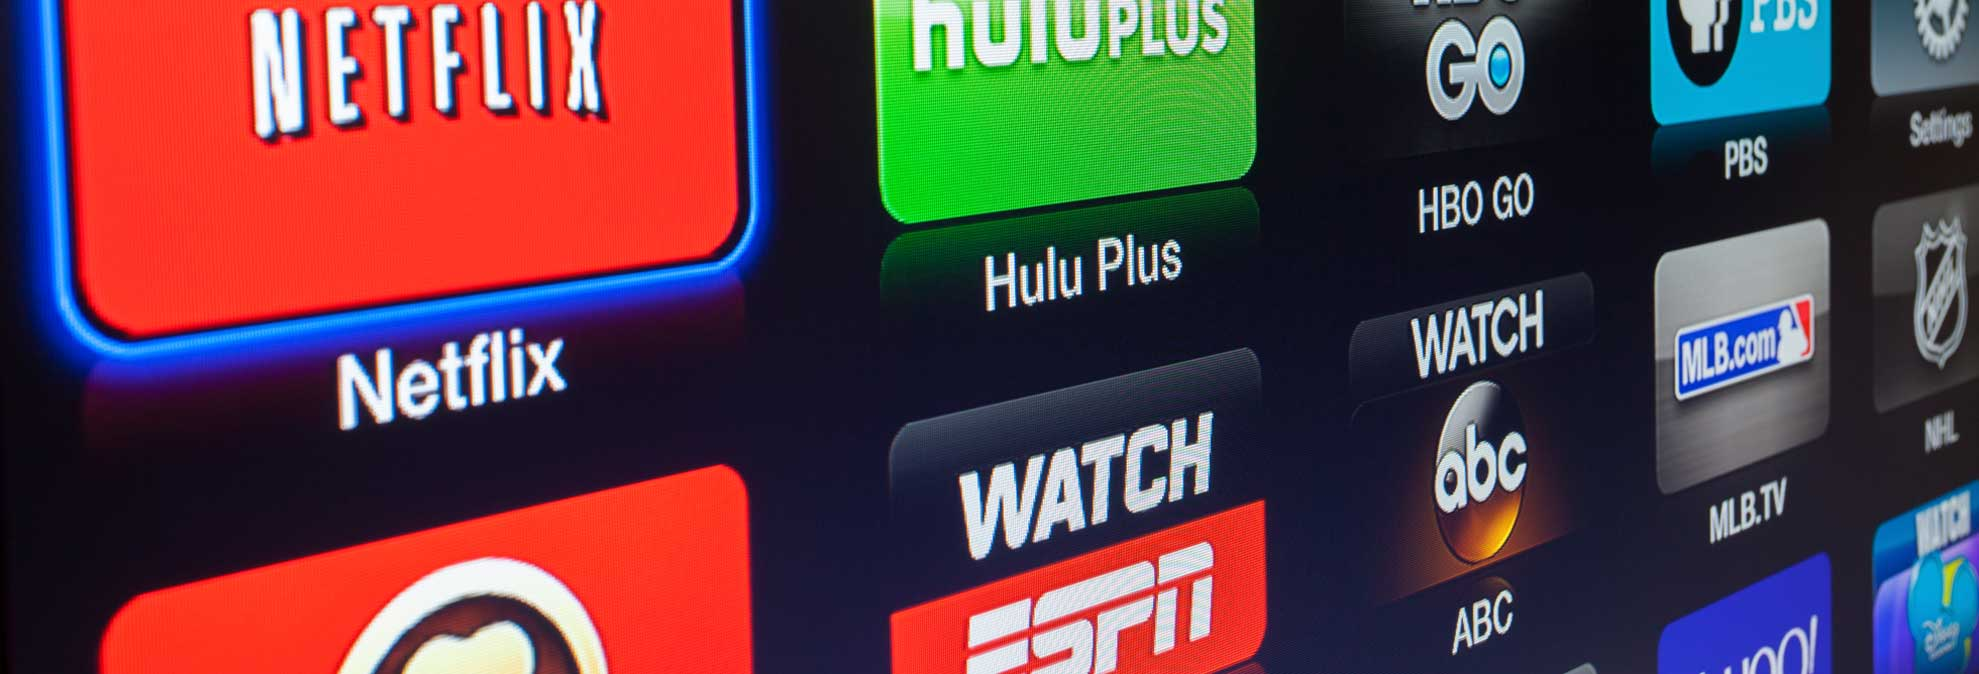 Best Streaming Media Player And Service Buying Guide